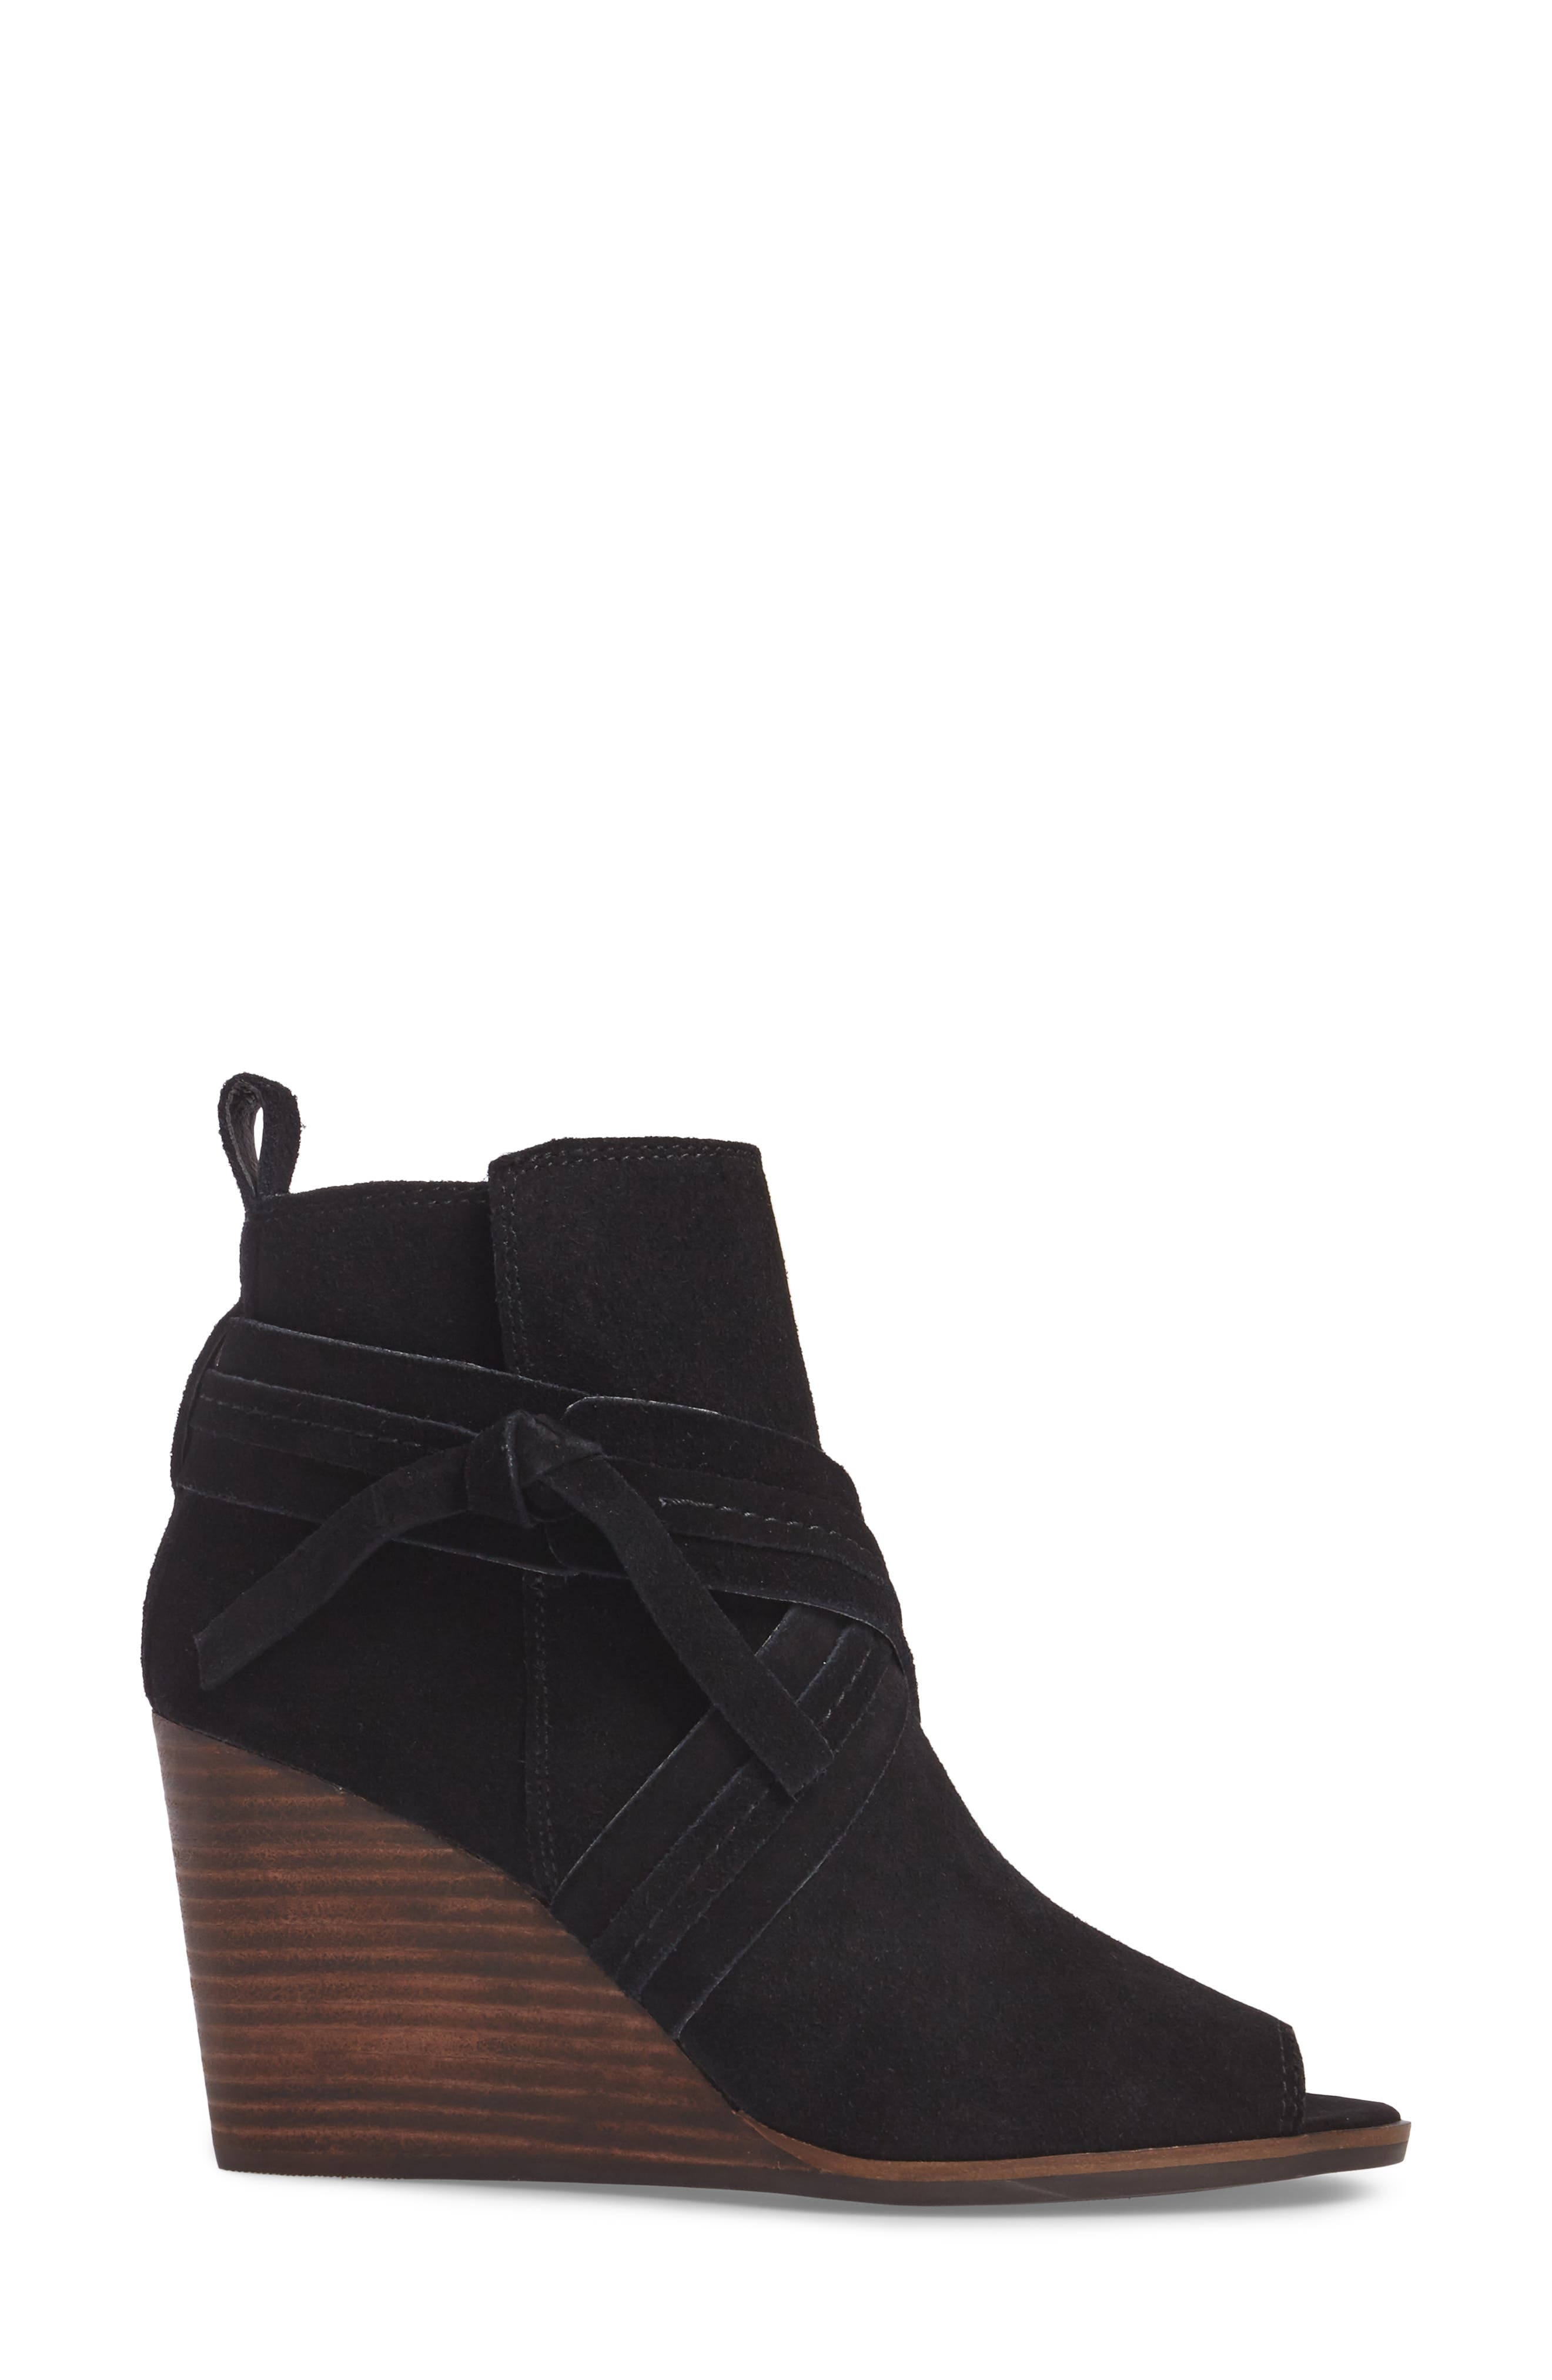 Udom Wedge Bootie,                             Alternate thumbnail 3, color,                             001